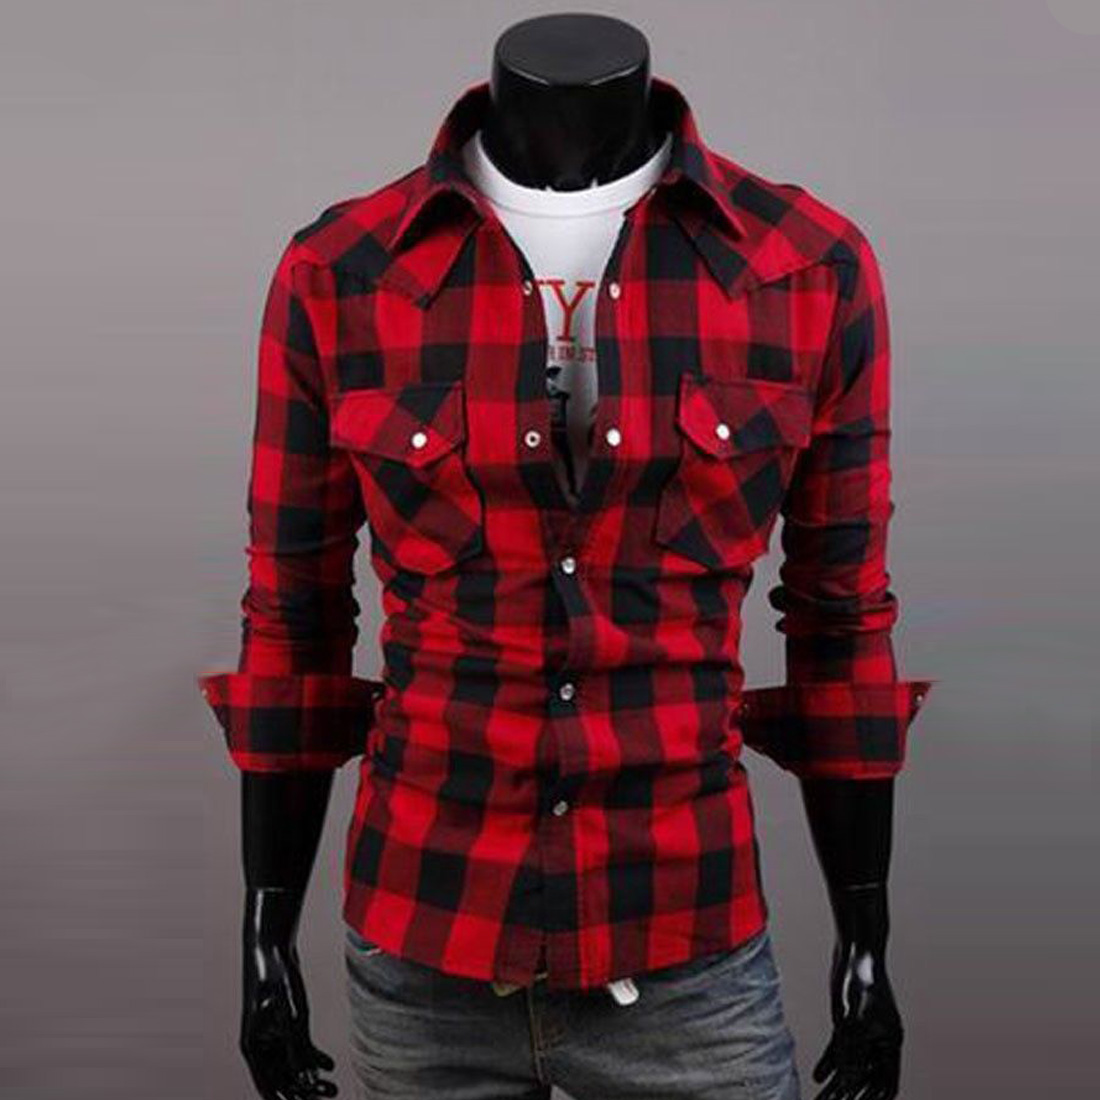 mens red and black plaid shirt page 1 - button